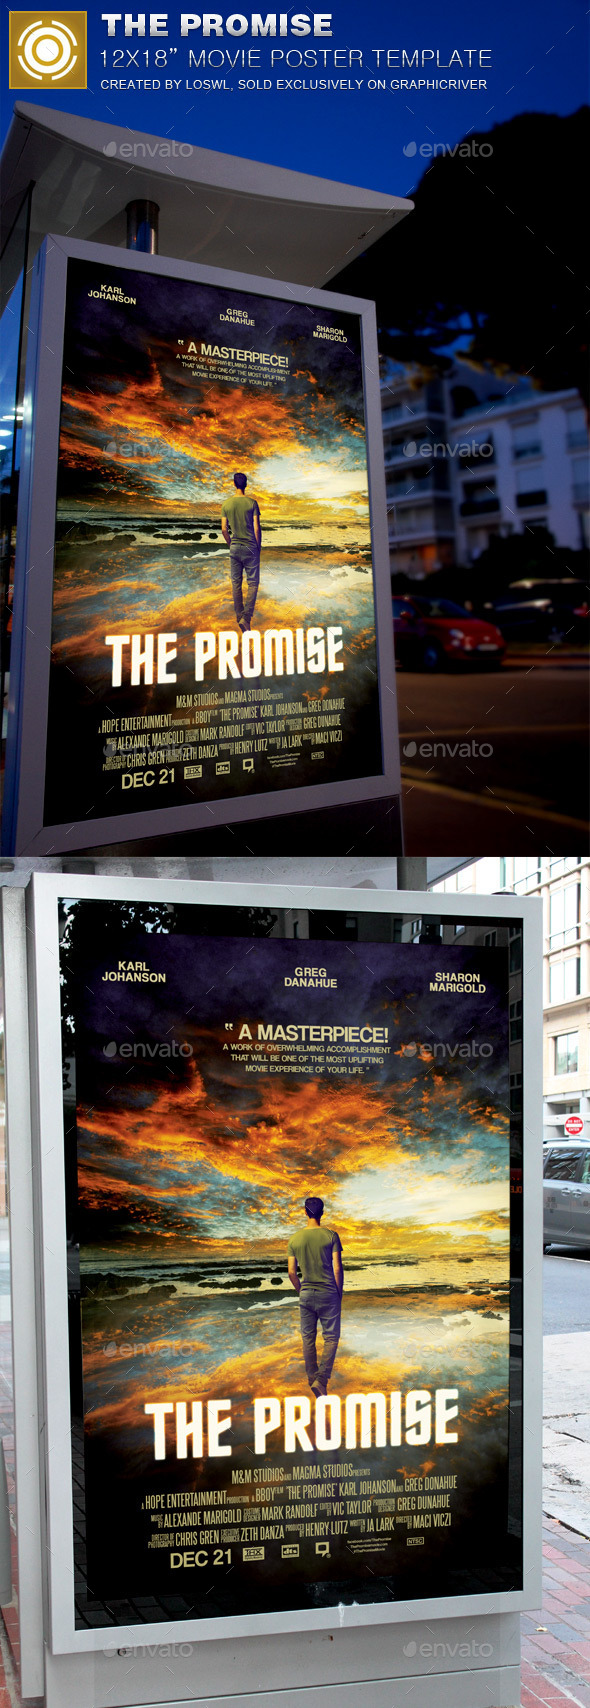 The Promise Movie Poster Template - Church Flyers